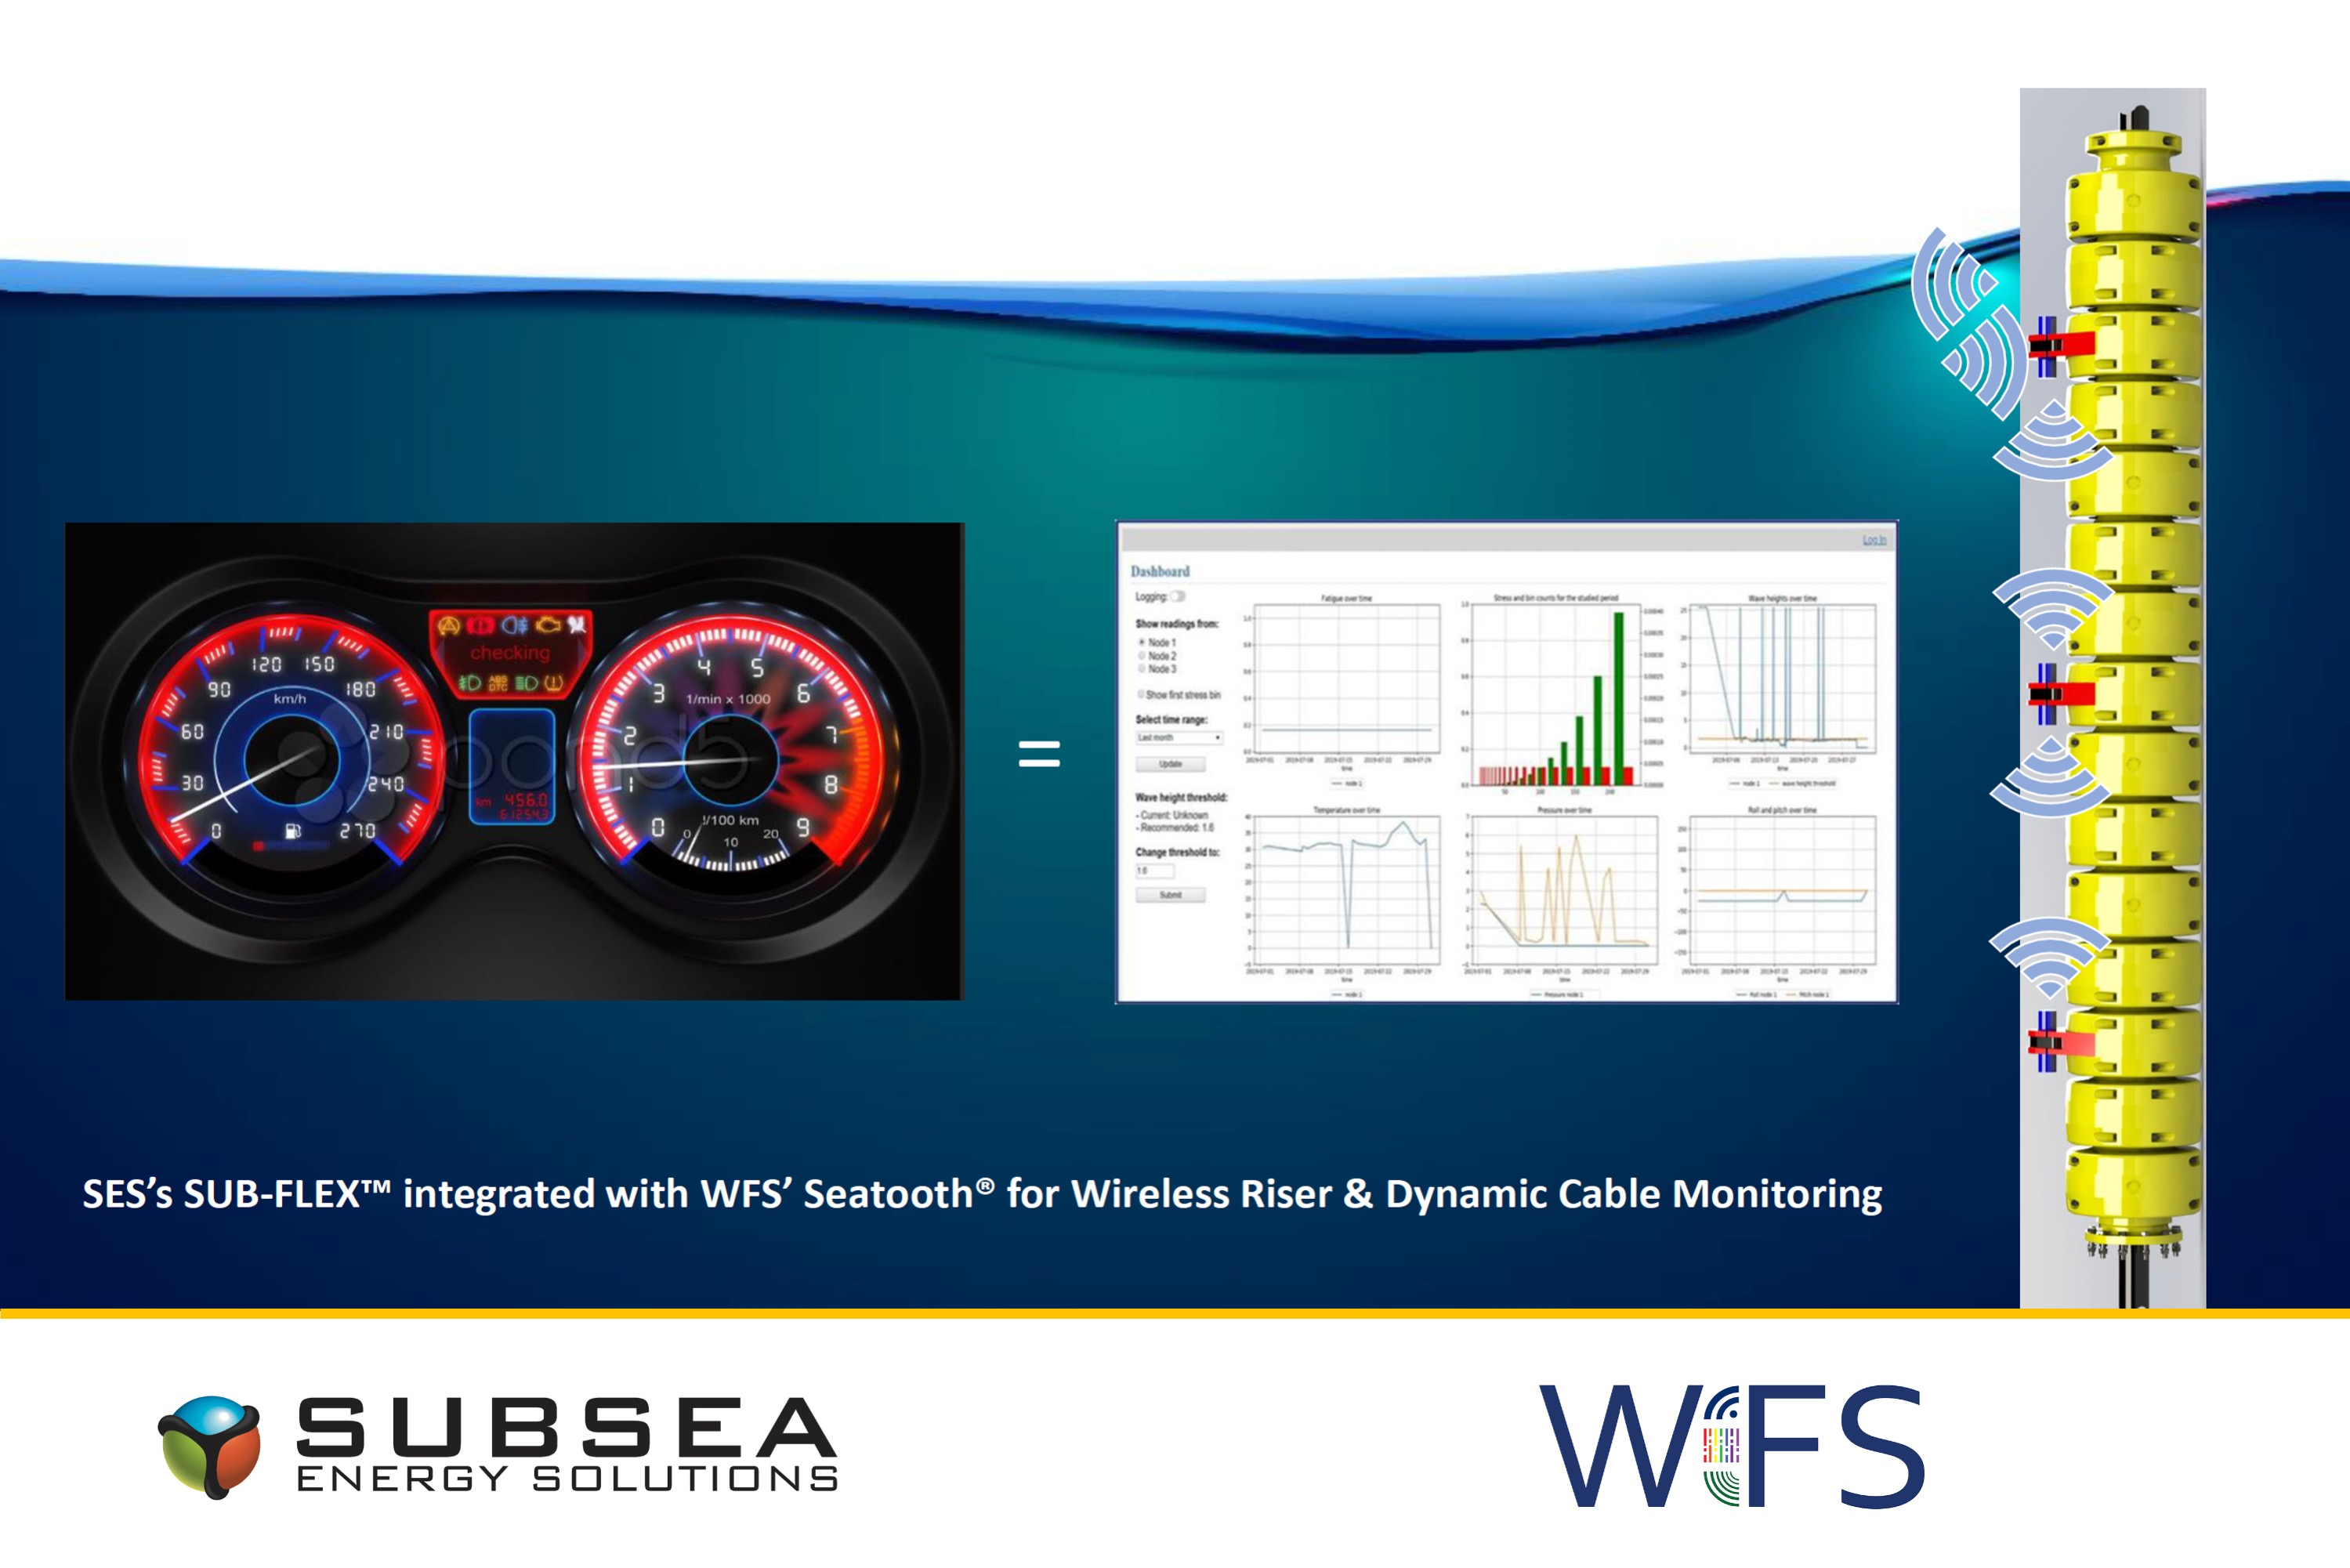 WFS and Subsea Energy Solutions join forces